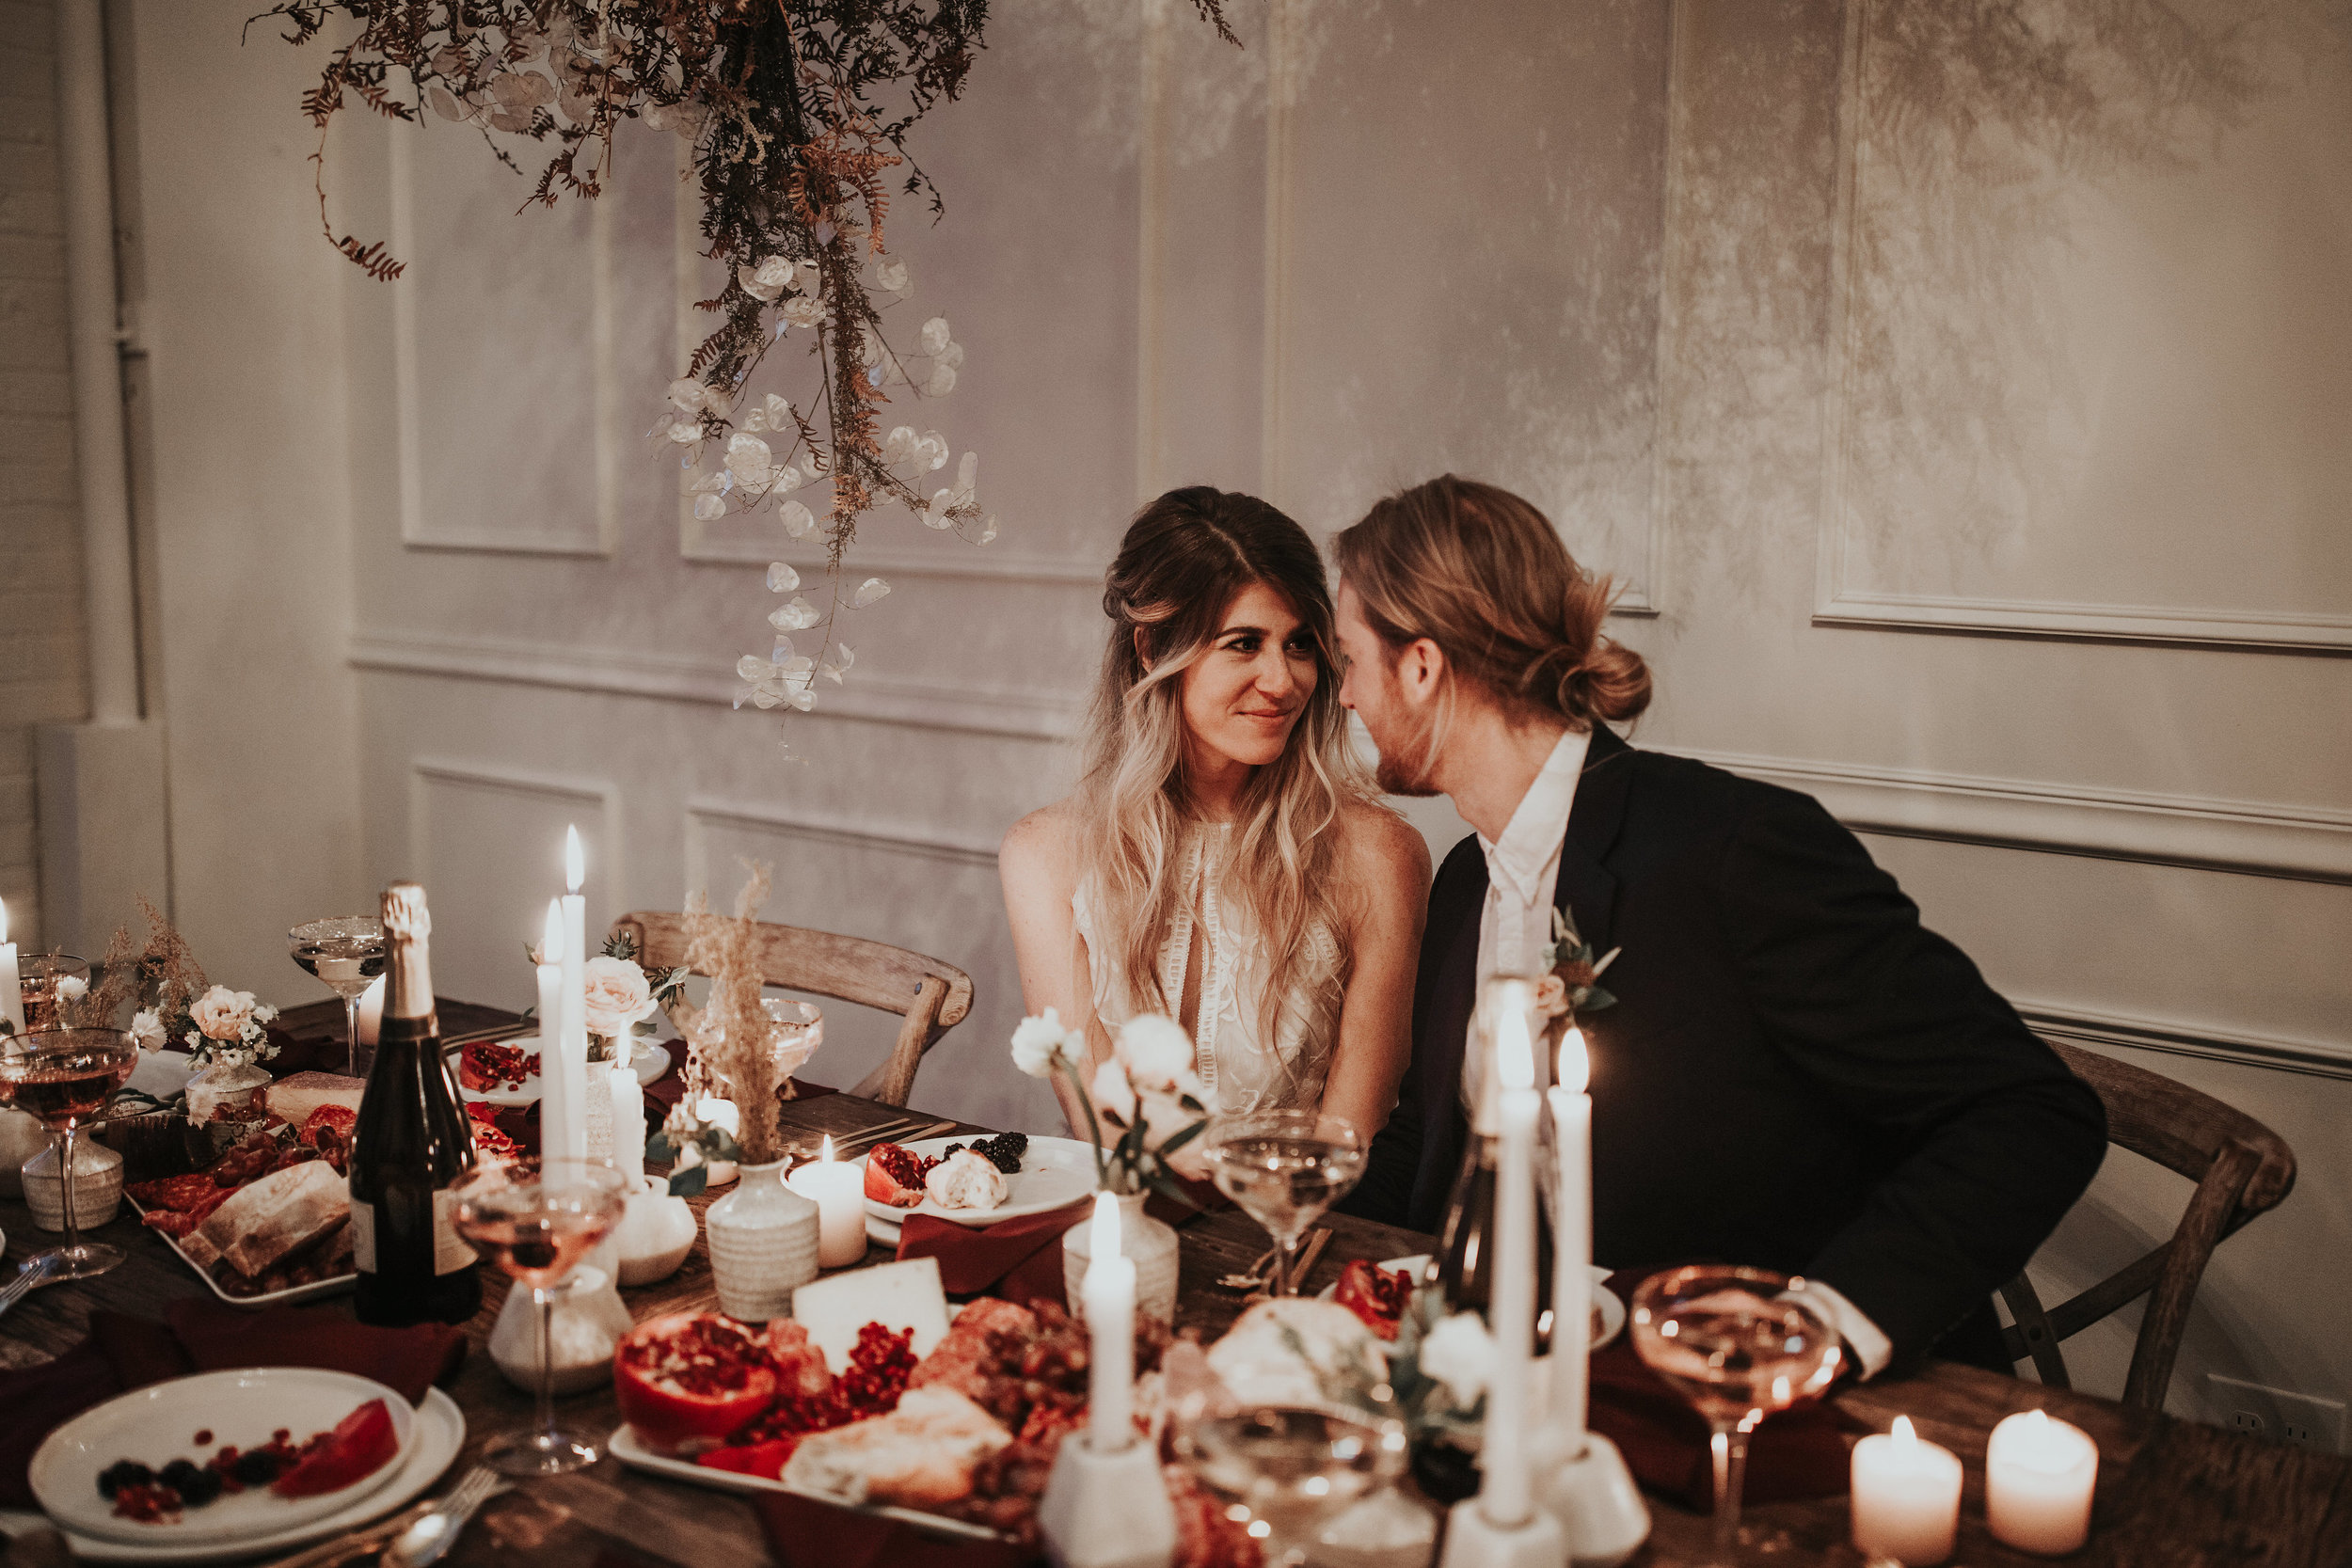 chelsie + todd - chic industiral wedding inspiration with a dried foliage cloud